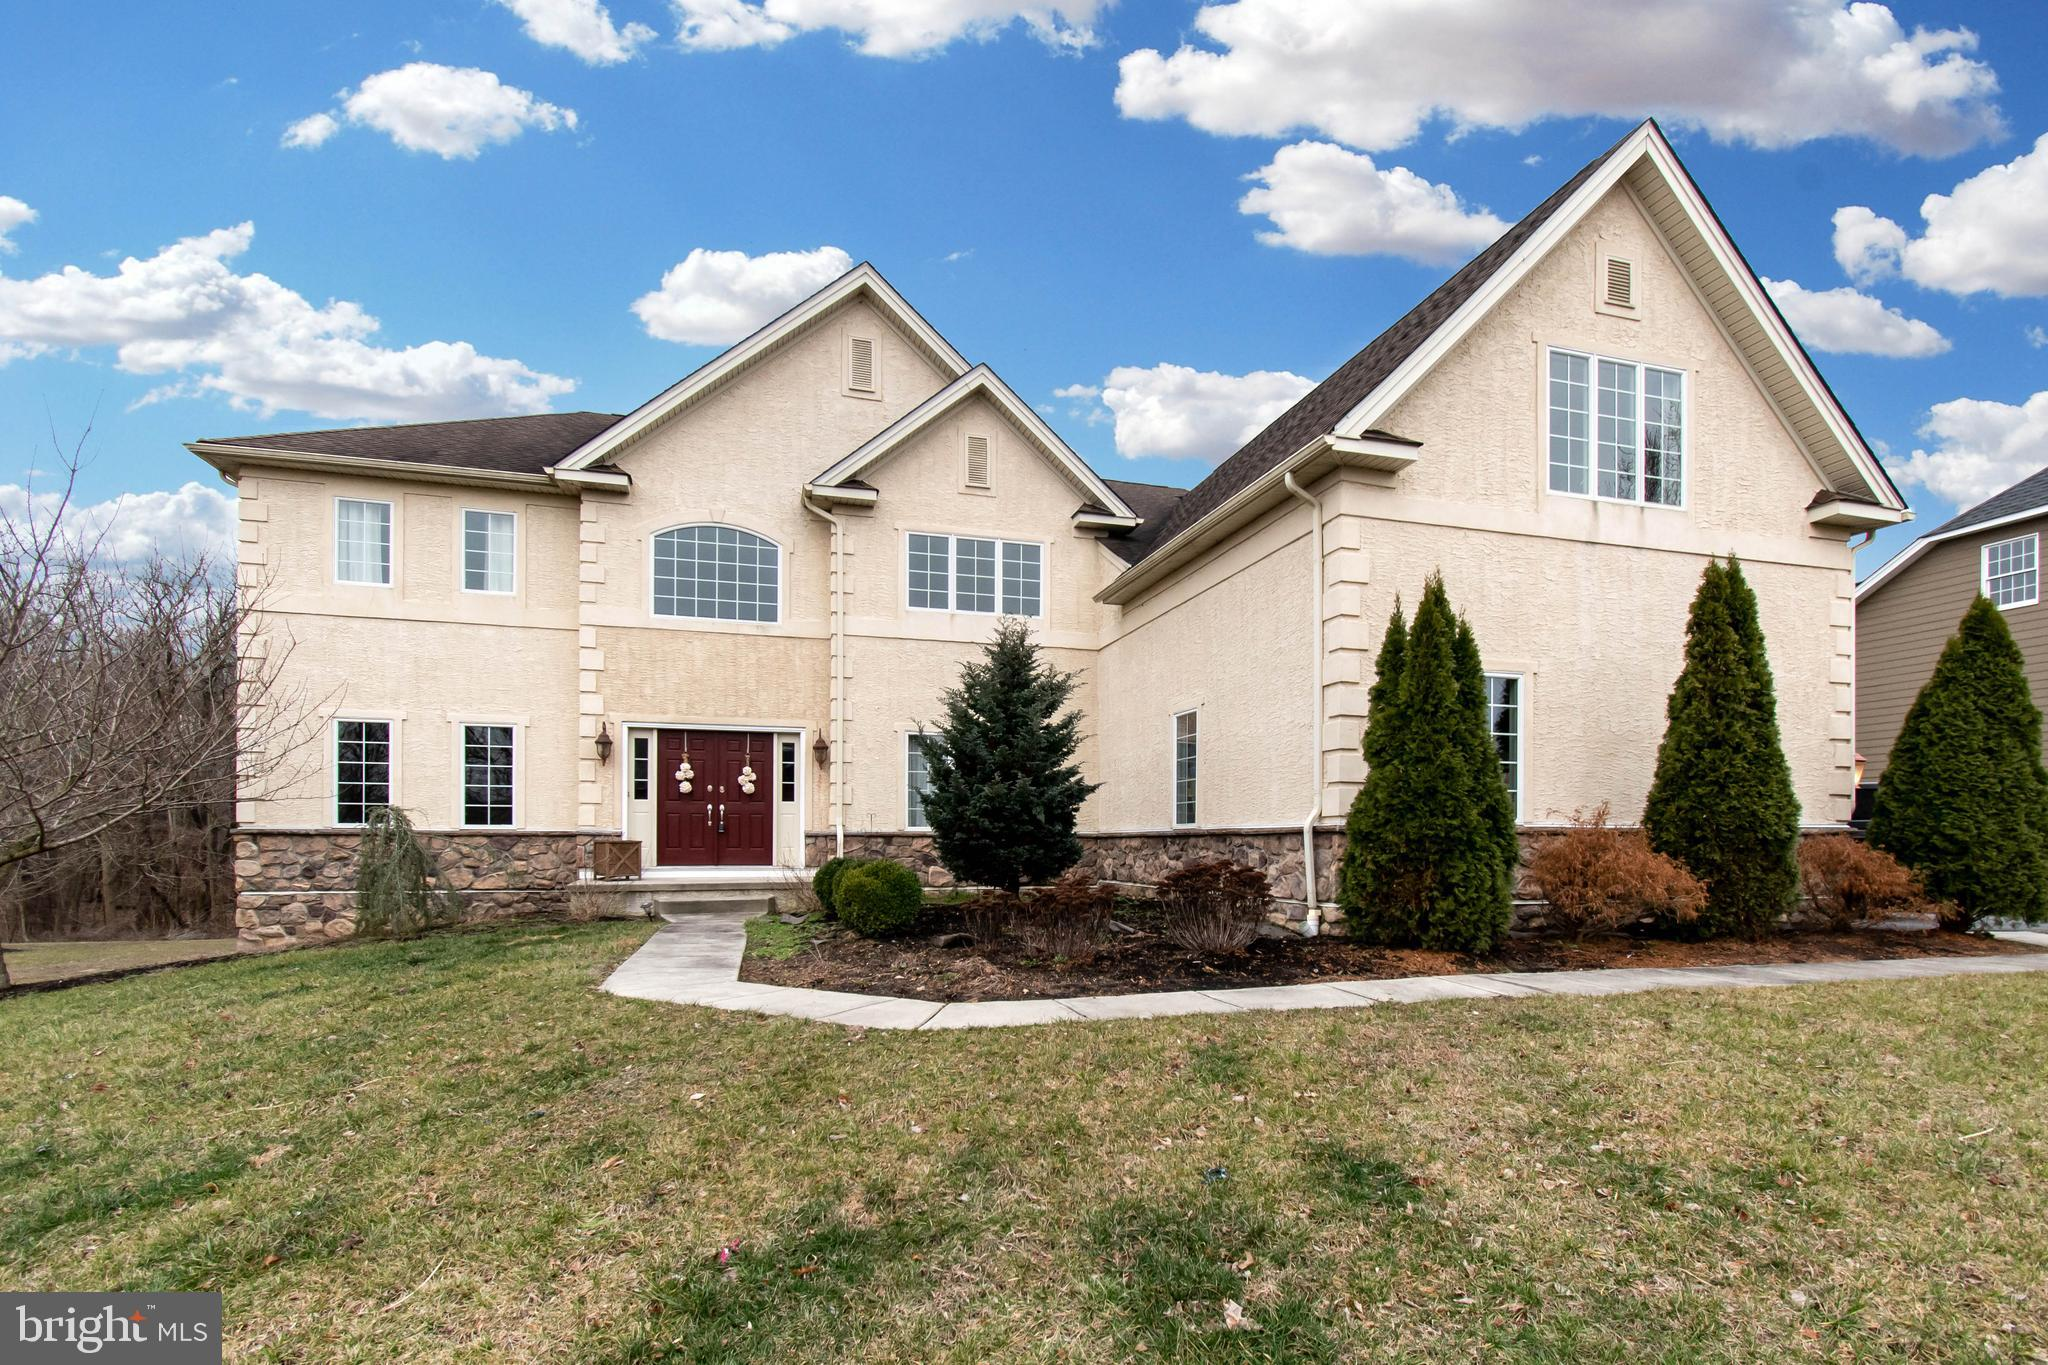 You must come and see this stunning home! Upon entering, you~ll see the beautiful curved staircase leading to 4 large bedrooms upstairs-the master with huge gorgeous tiled en-suite, 2 large closets; bedroom 2 also with its own bathroom, and 2 more spacious bedrooms. The upstairs hall has beautiful hardwood, overlooking the inviting family room. Downstairs offers beautiful new hardwood floors,  a very large eat-in gourmet kitchen with modern cabinets, granite countertops. On to the elegant and spacious dining room, warm family room with high ceilings and fireplace, comfortable study and inviting living room. The home also offers a full basement, huge yard and a deck perfect for lounging, entertaining, cookouts, or whatever you can imagine! Schedule your showing today!